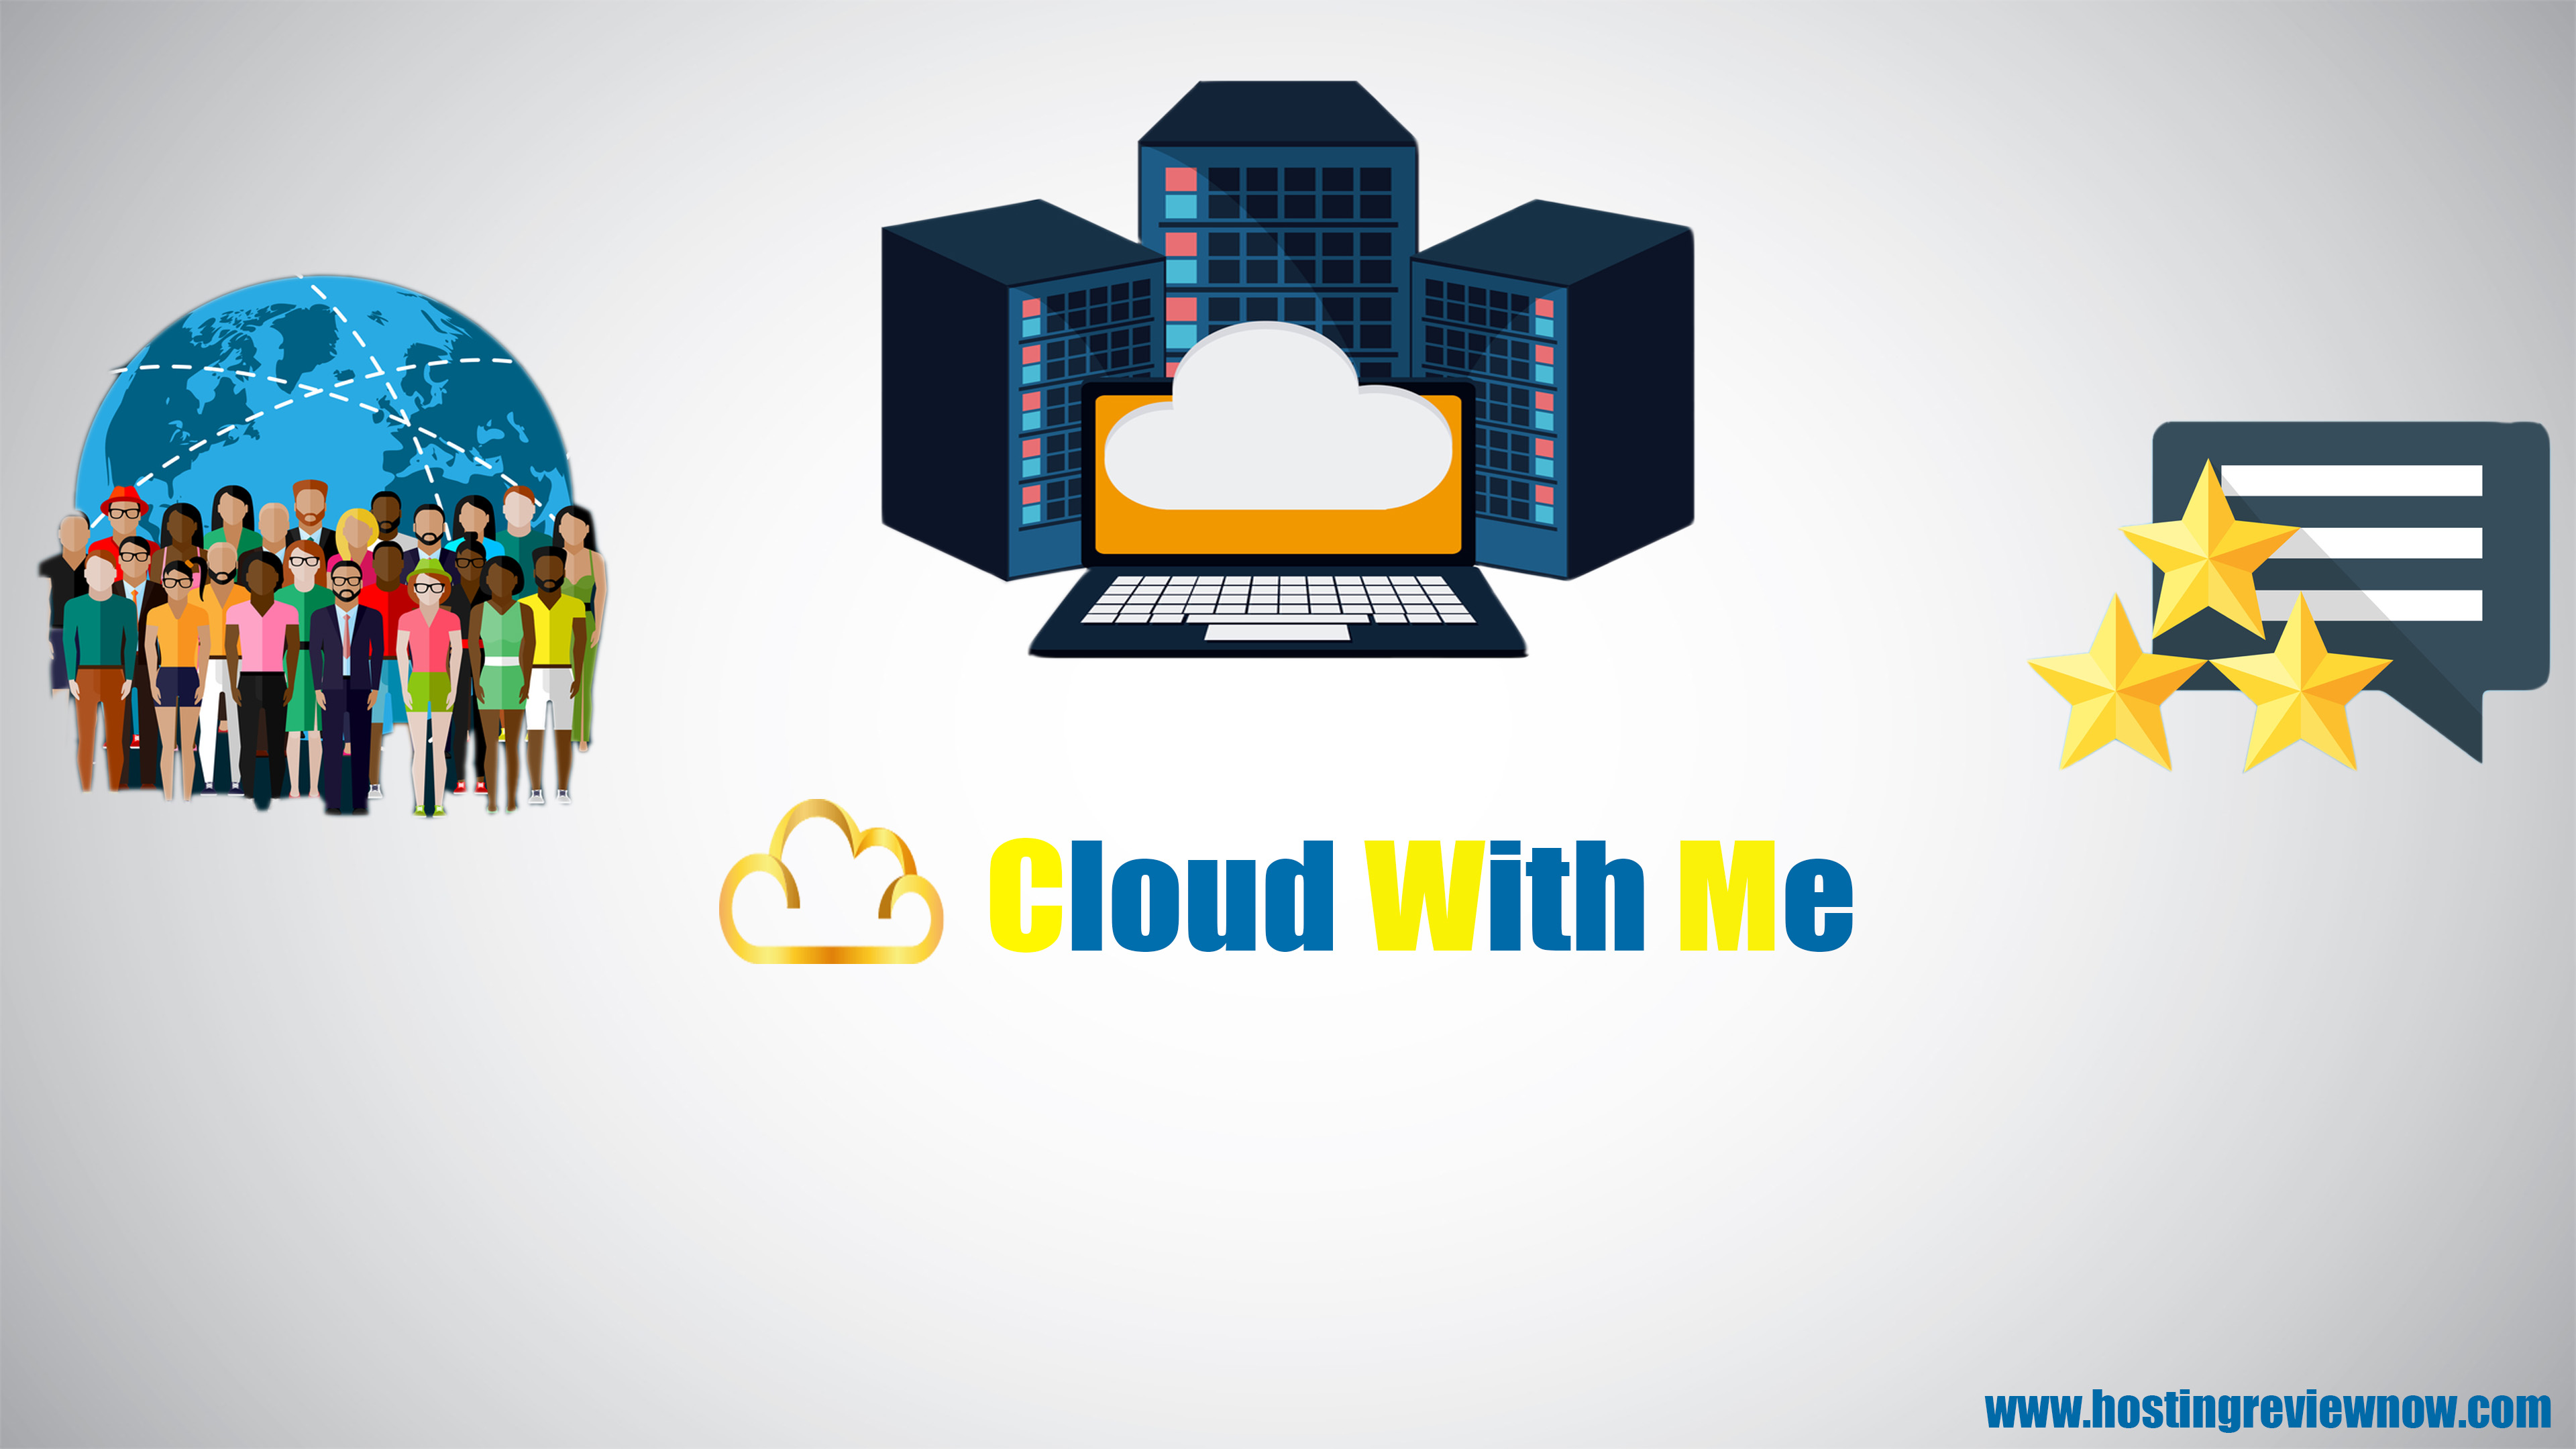 CloudWithMe Review